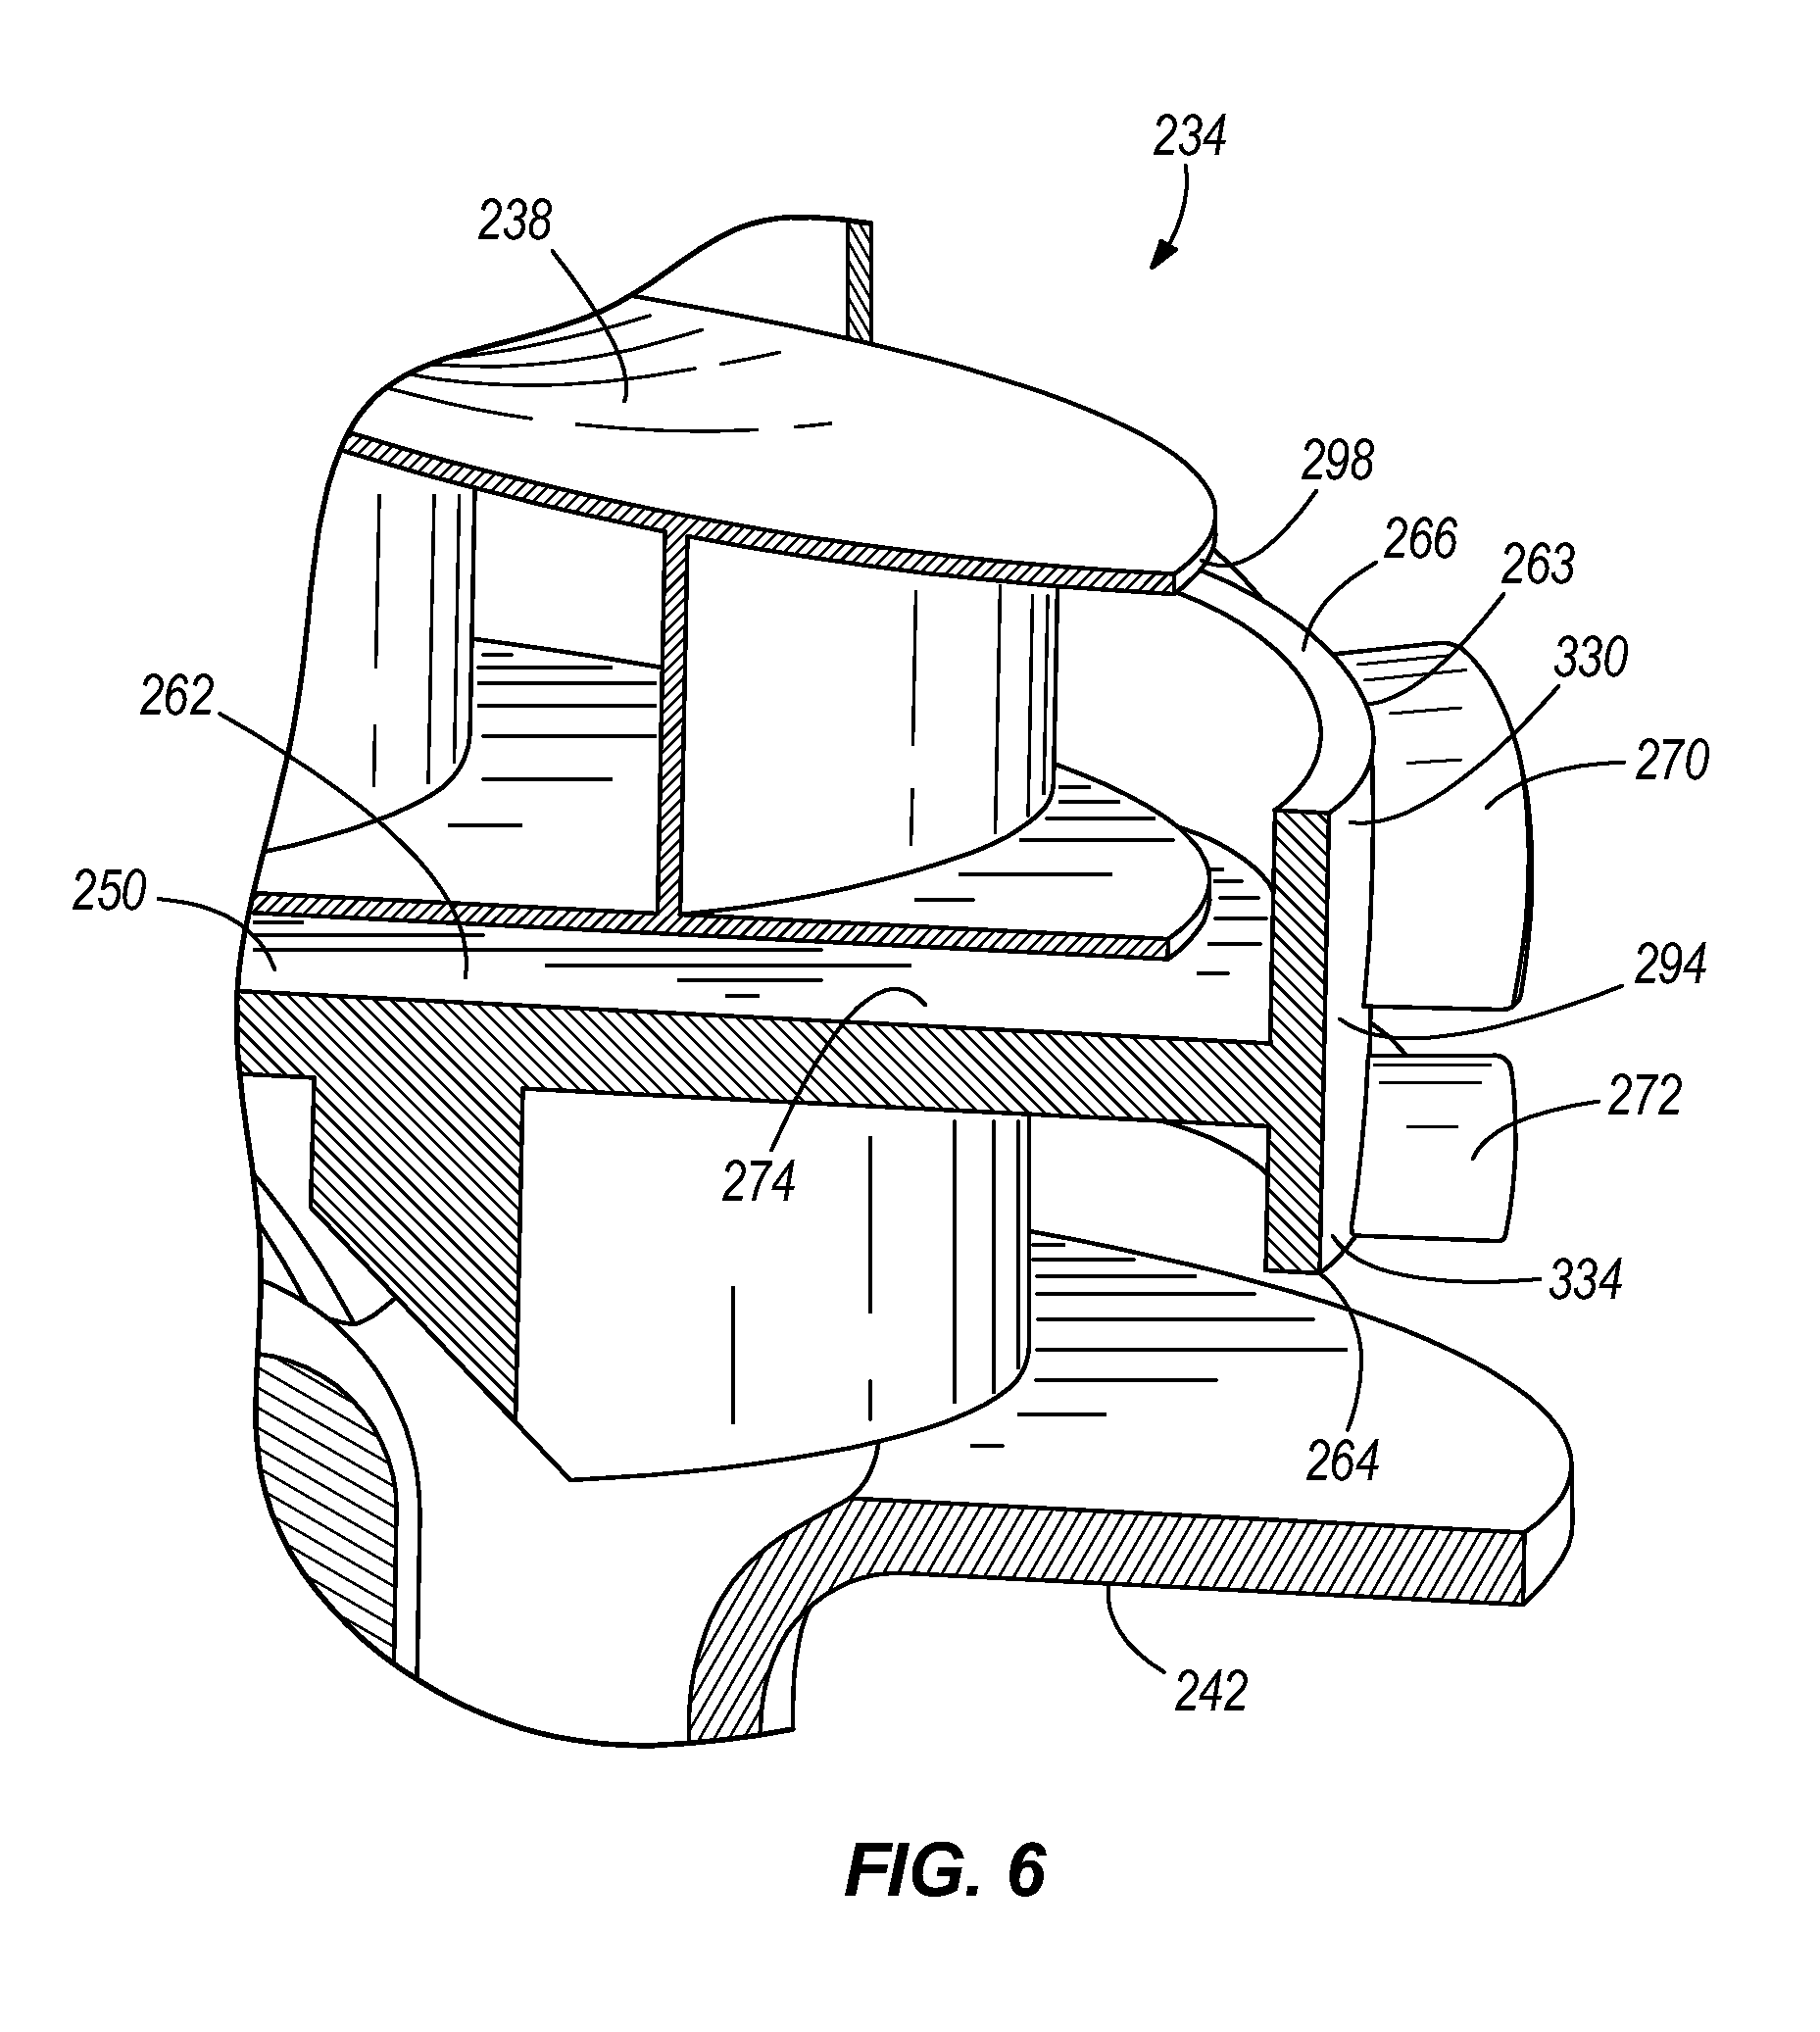 Coloring pages vacuum cleaner - Patent Drawing